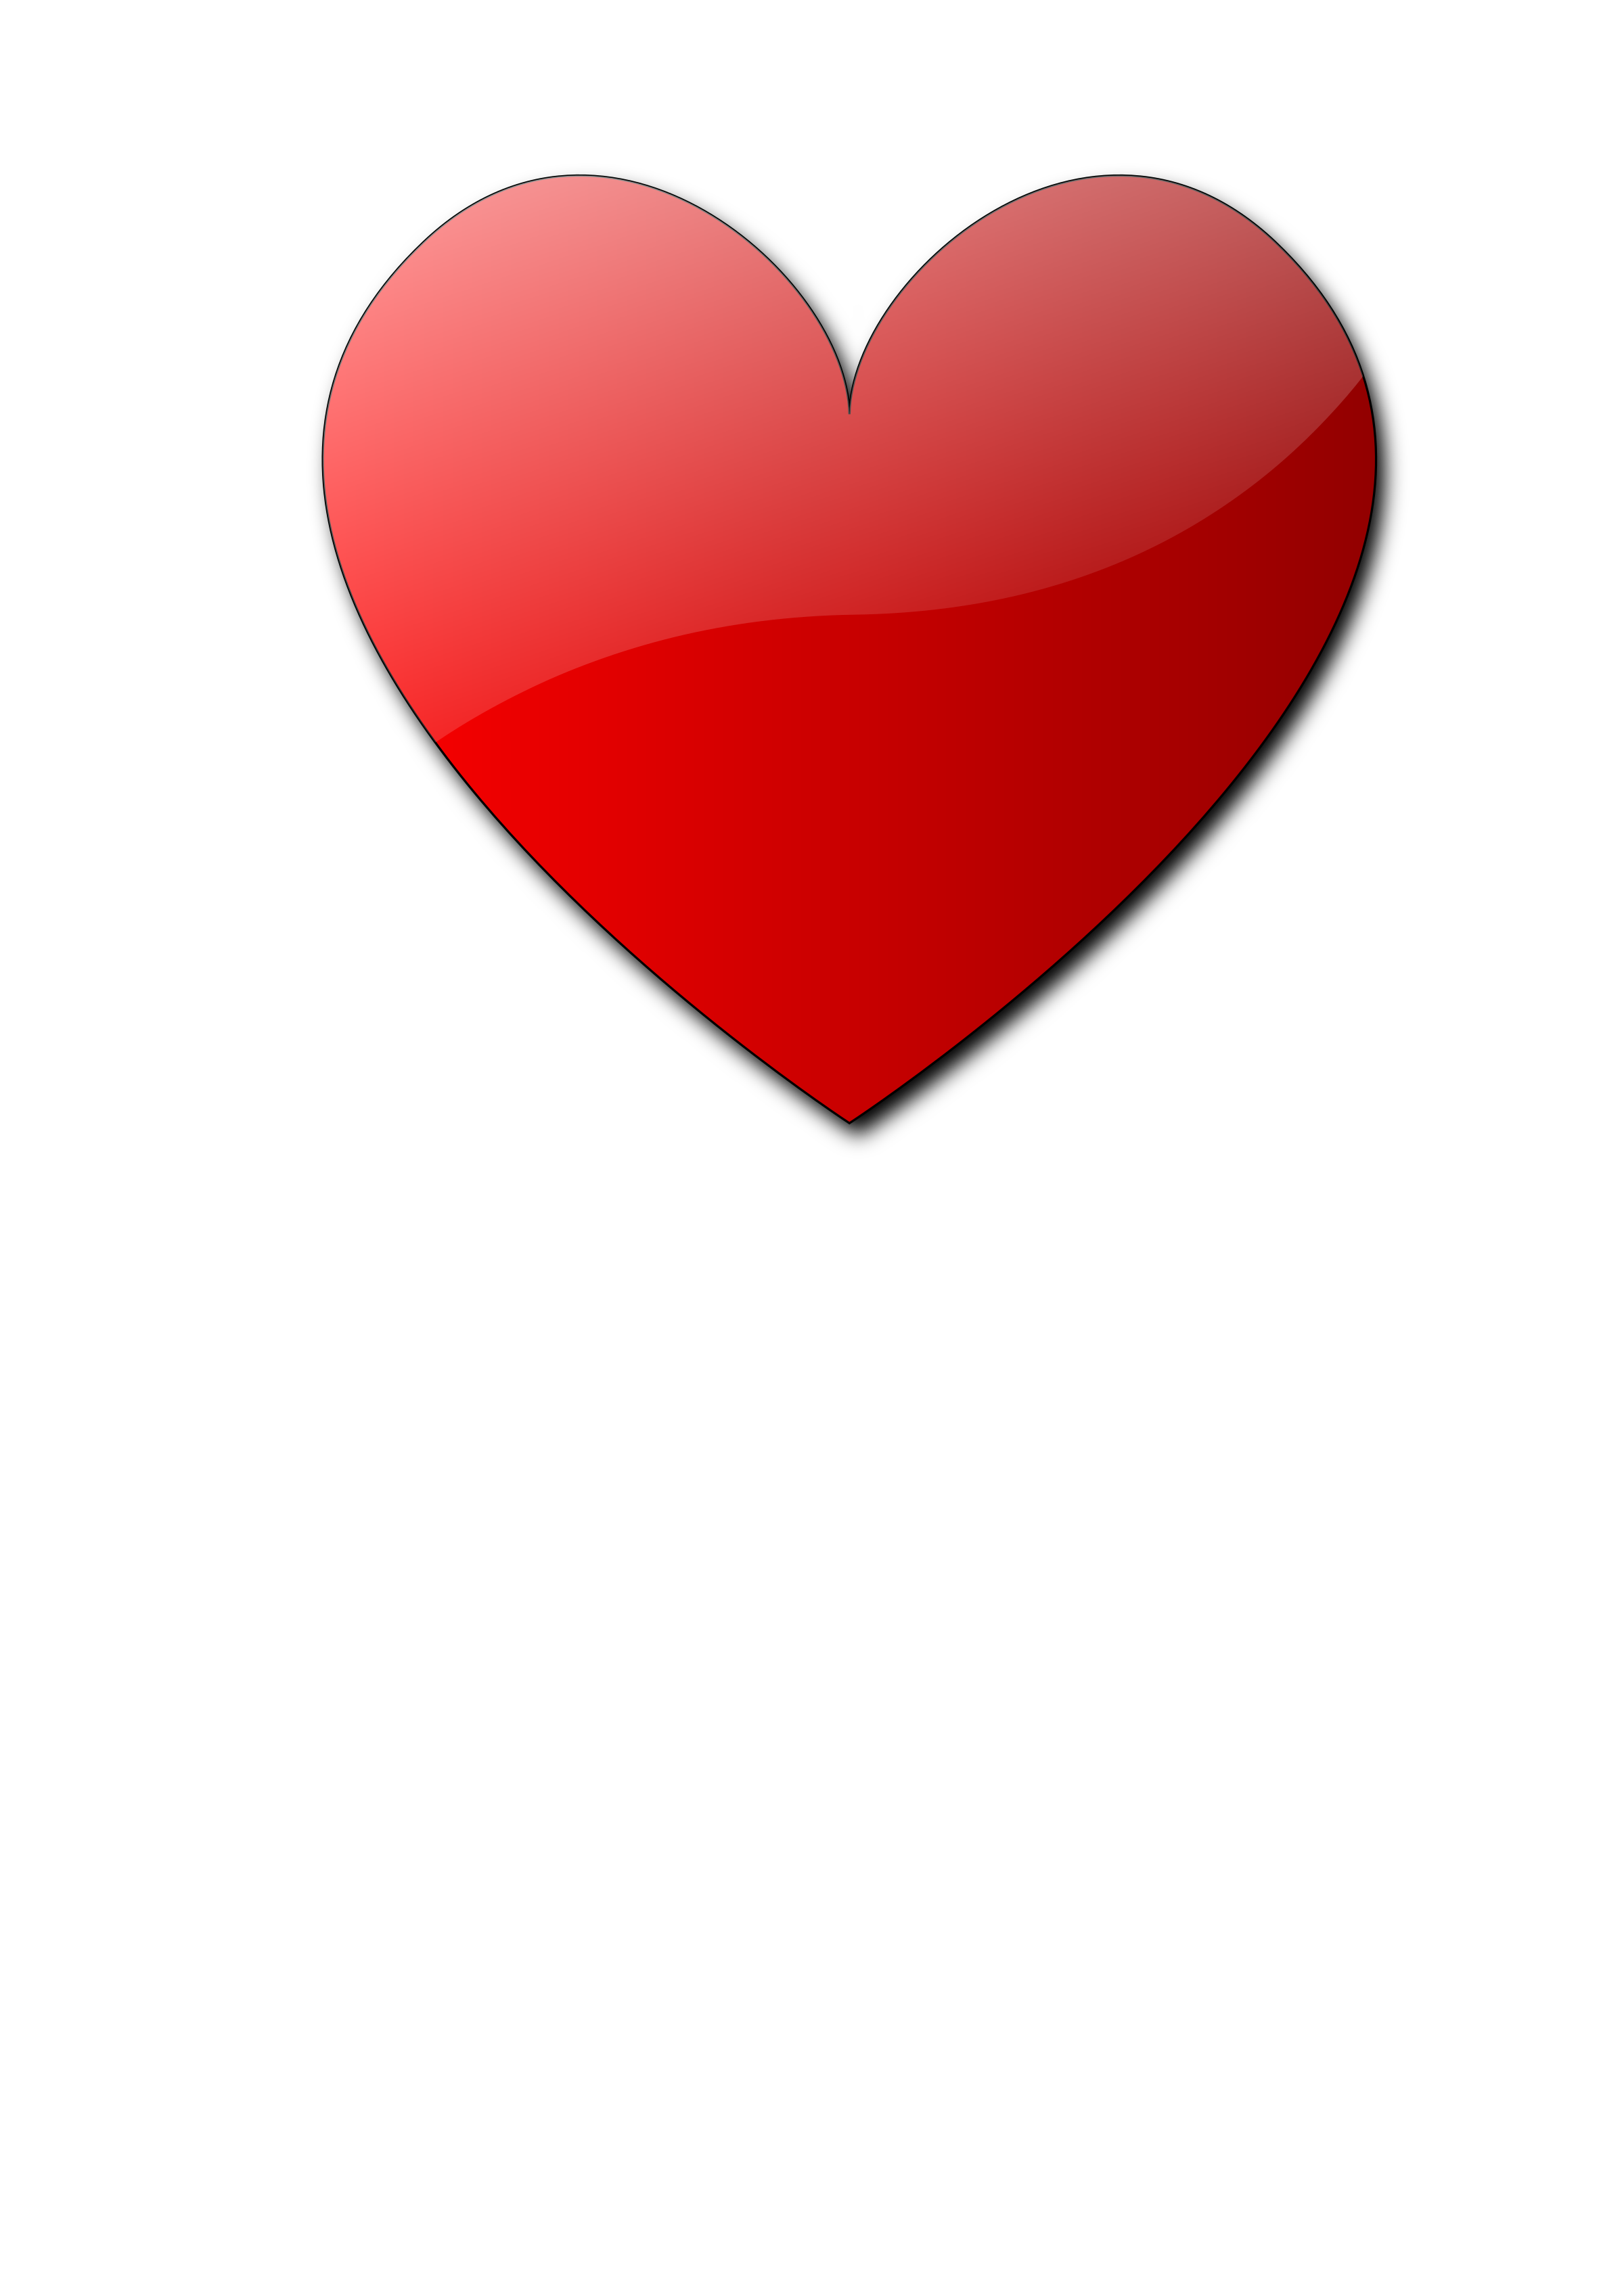 Clipart small heart download Clipart - Heart download